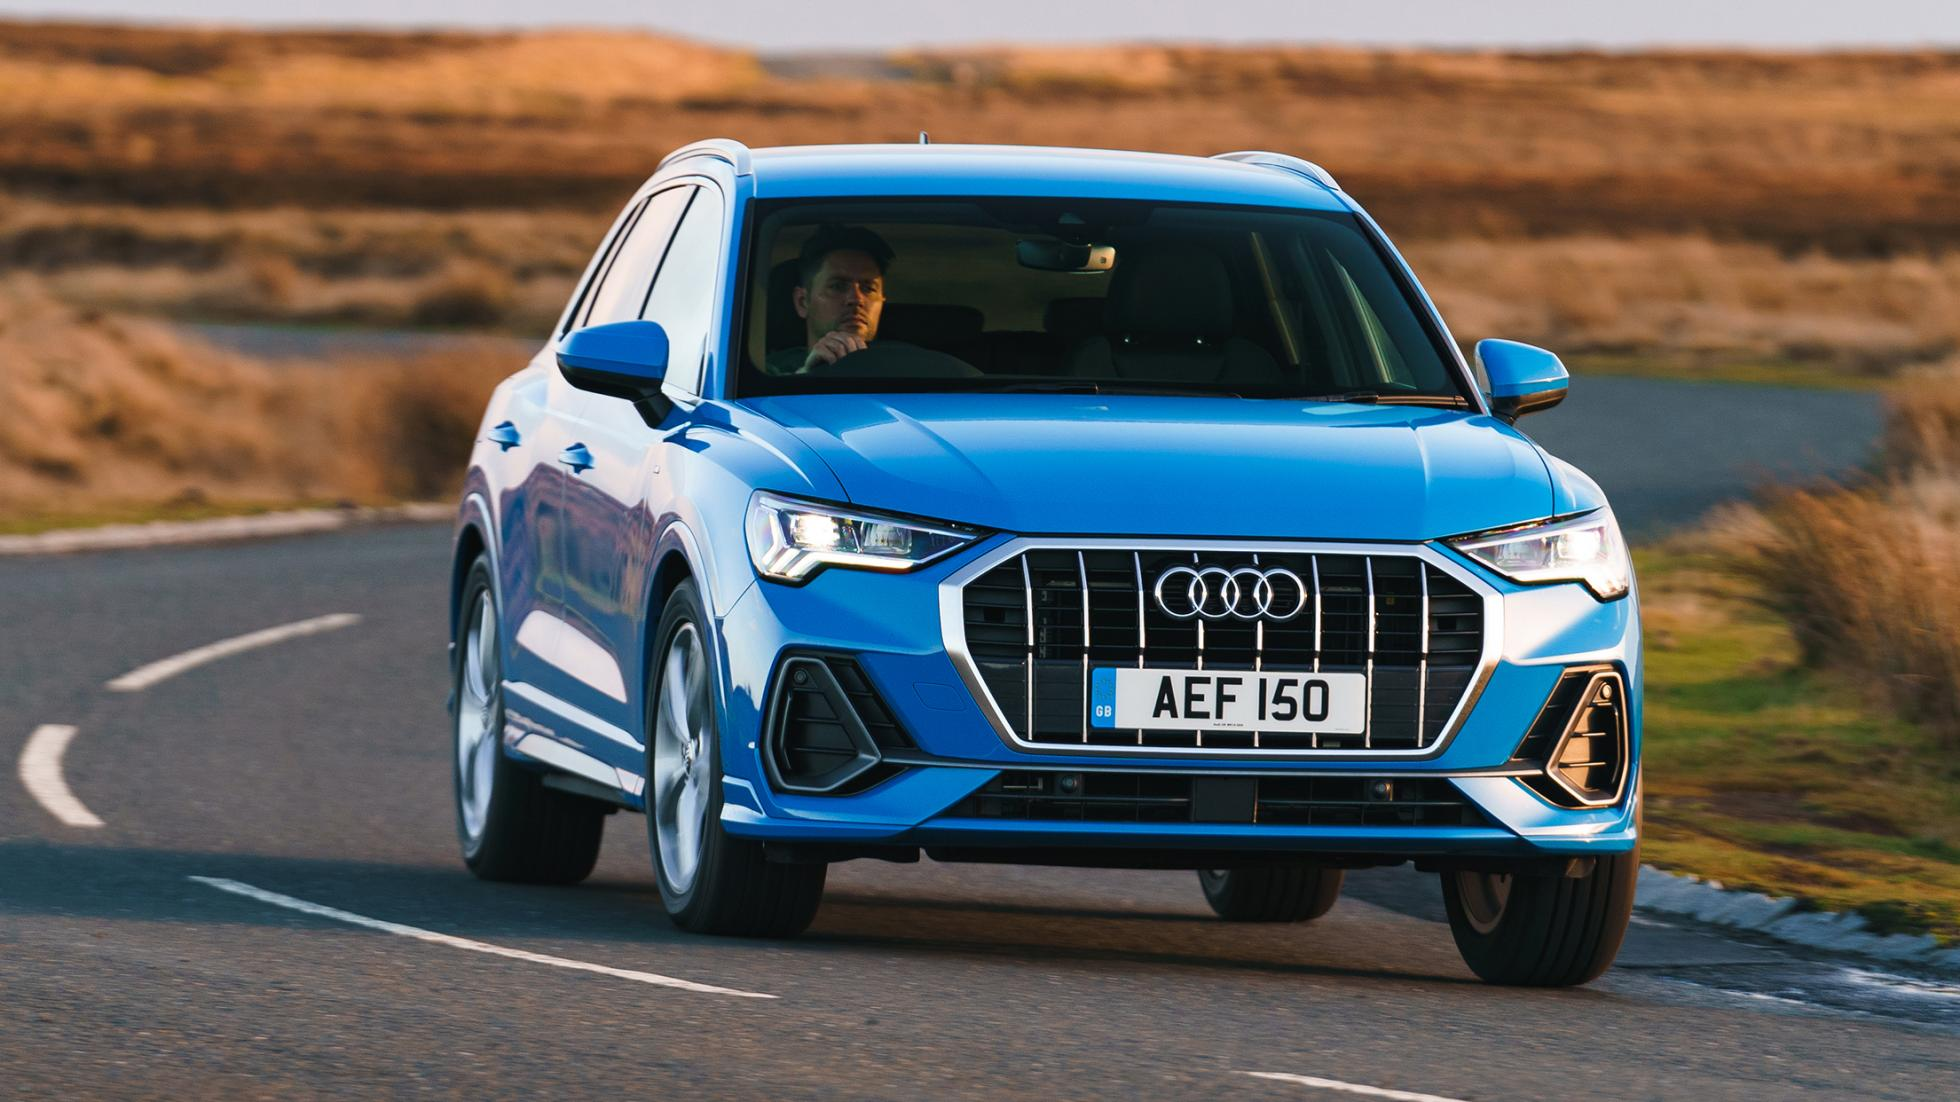 TopGear | Audi Q3 S-line review: another Audi best kept cheaper?